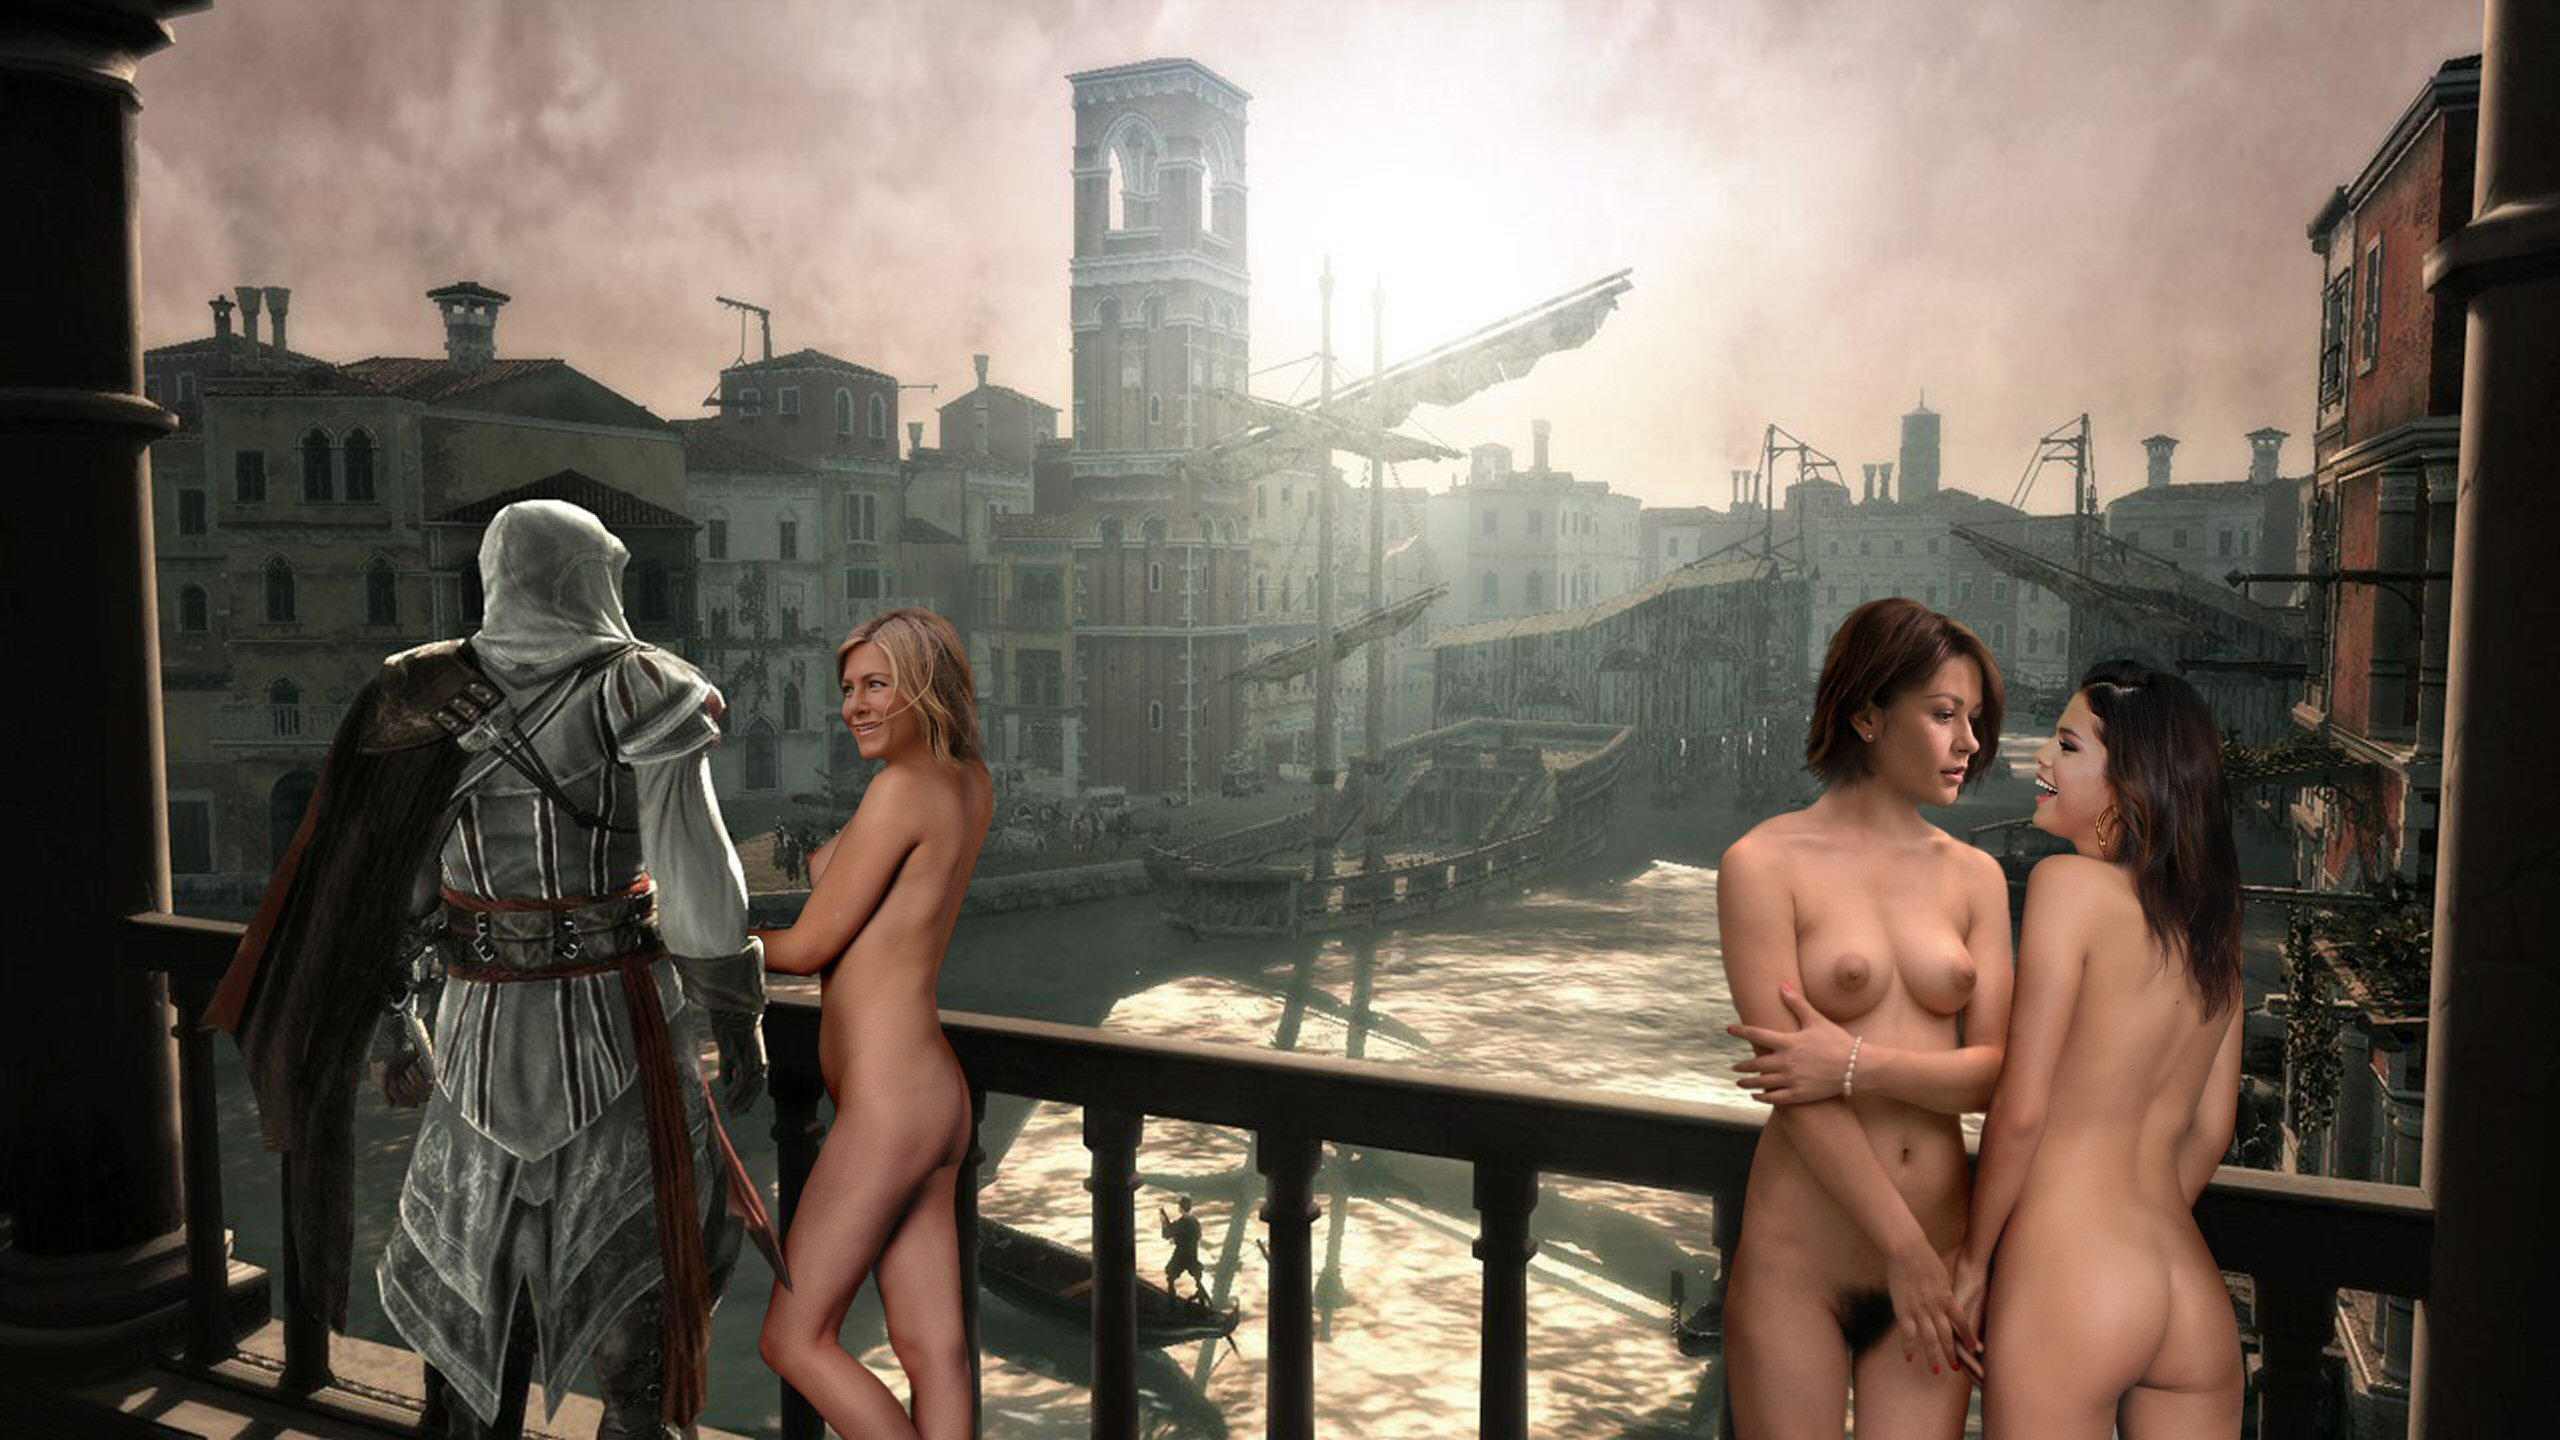 And senior assassins creed women naked tennis player